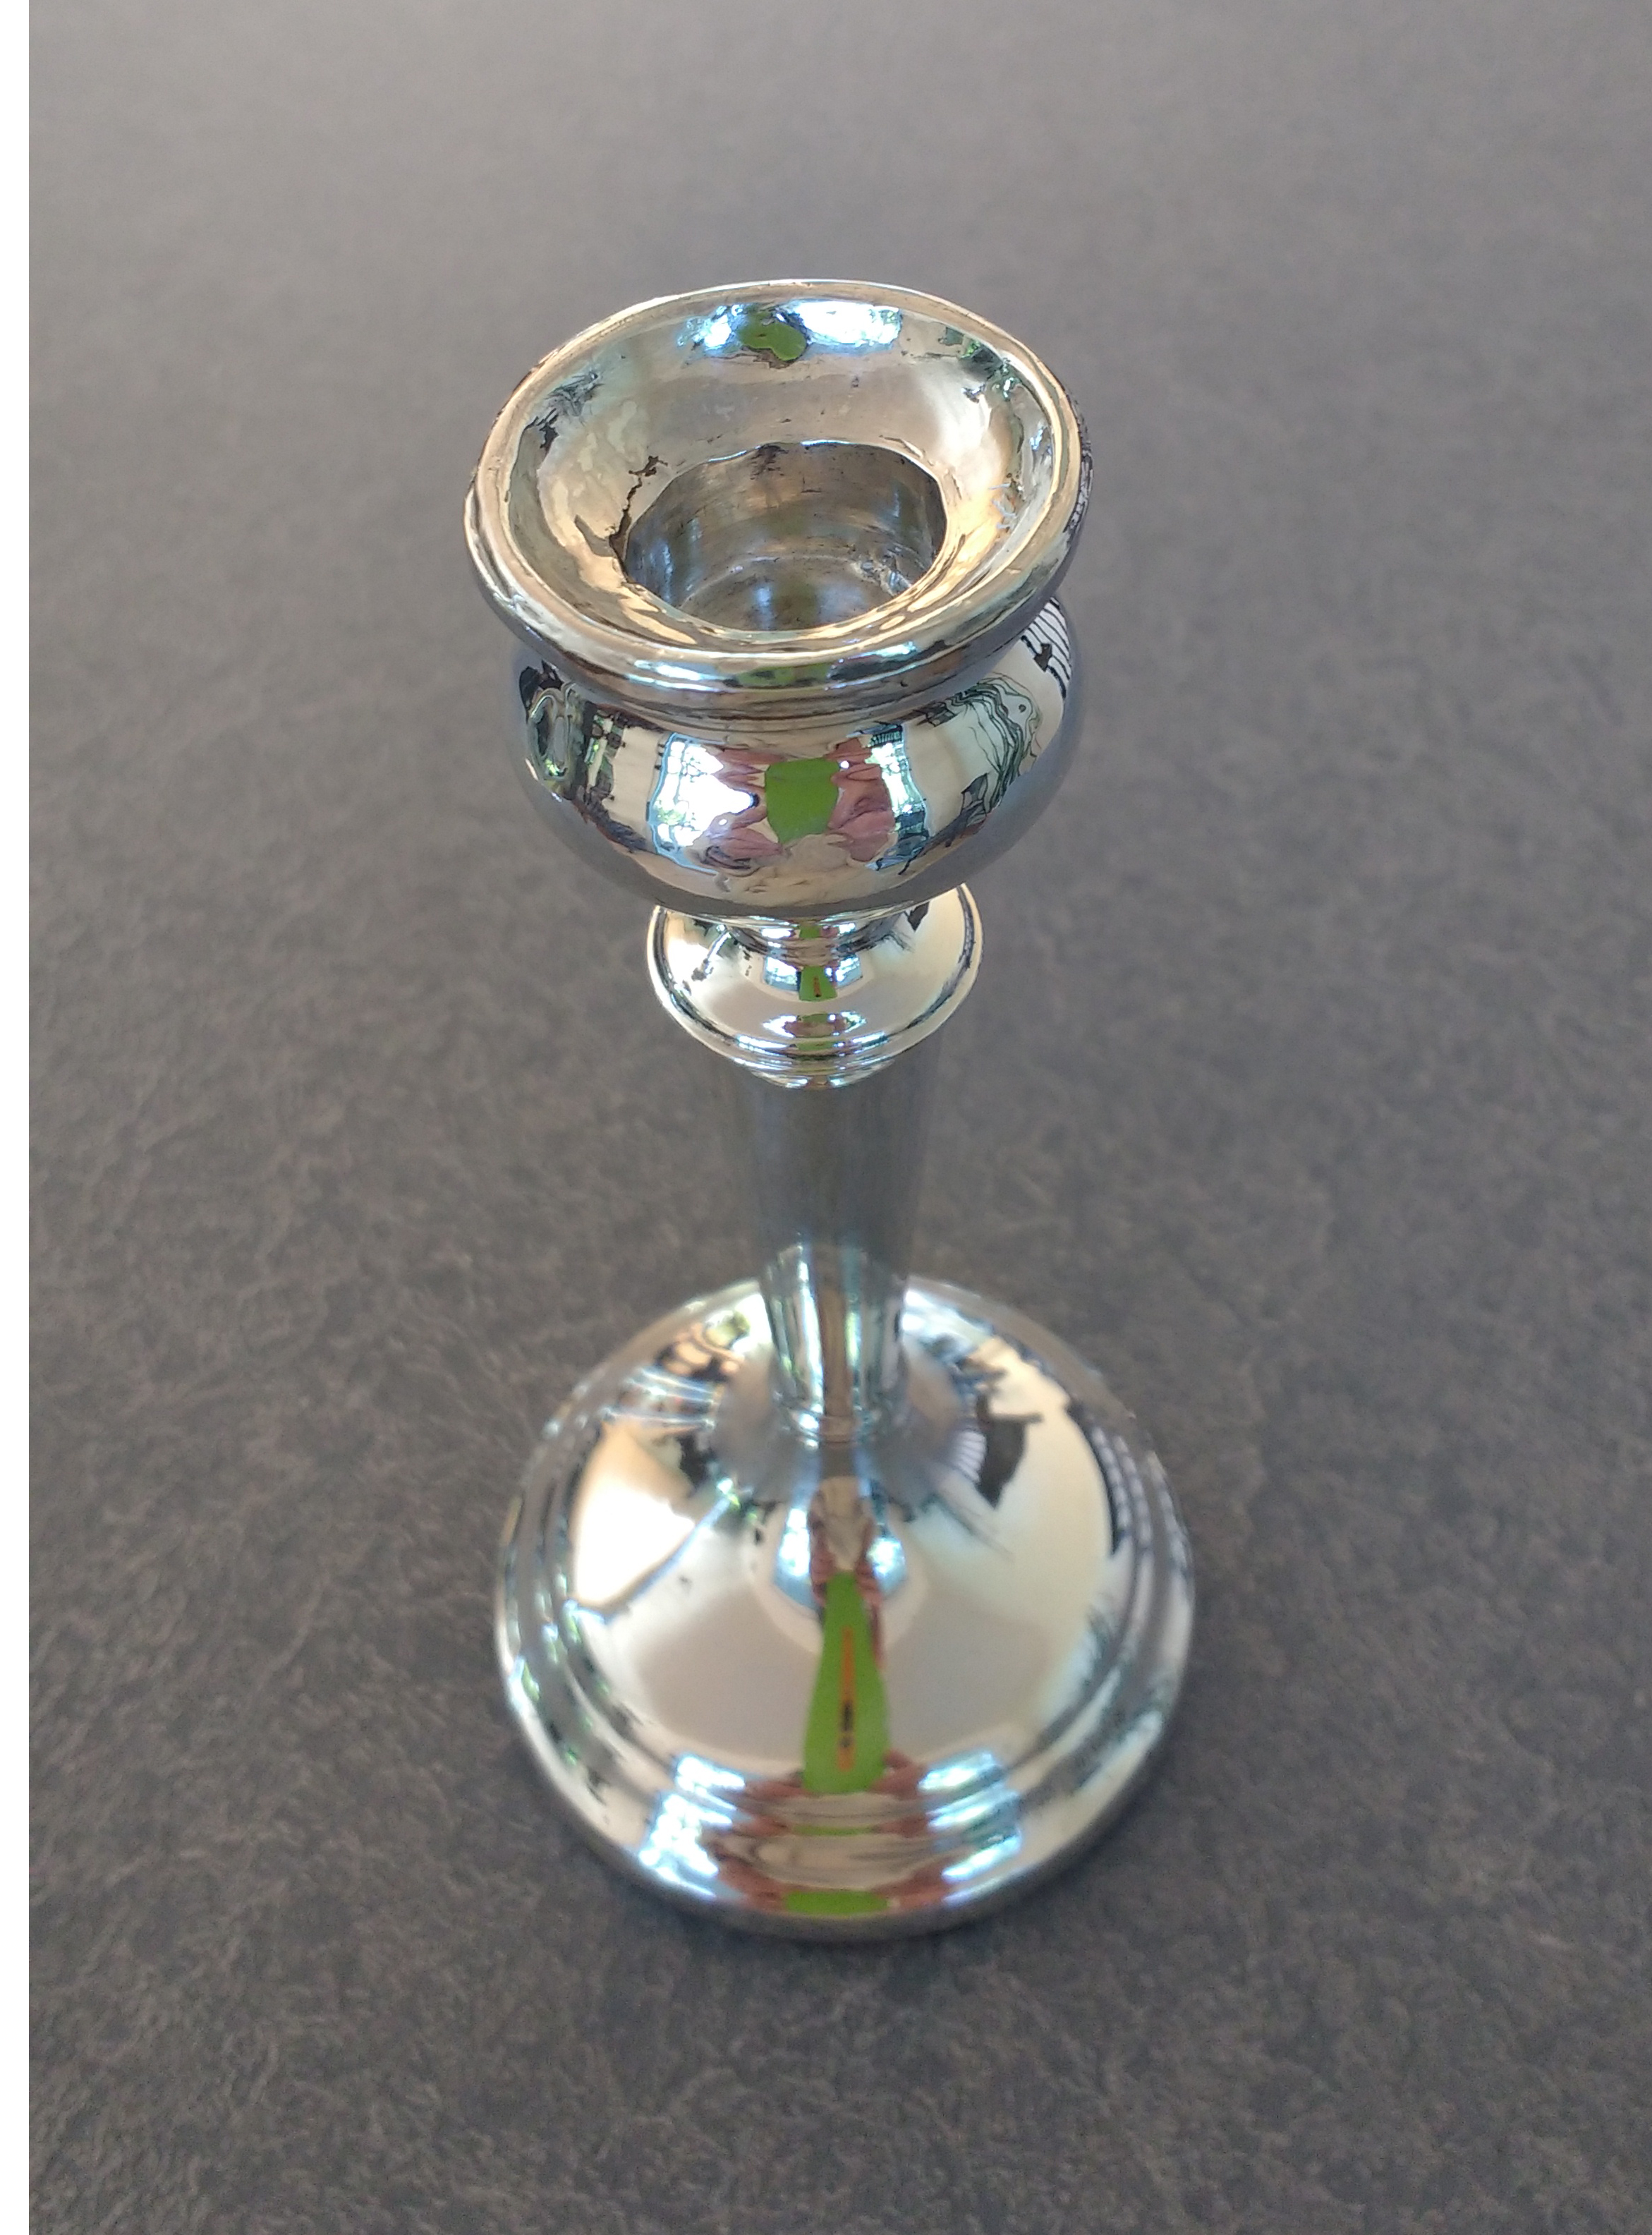 repair-smashed-candlecup-sterling-candlestick